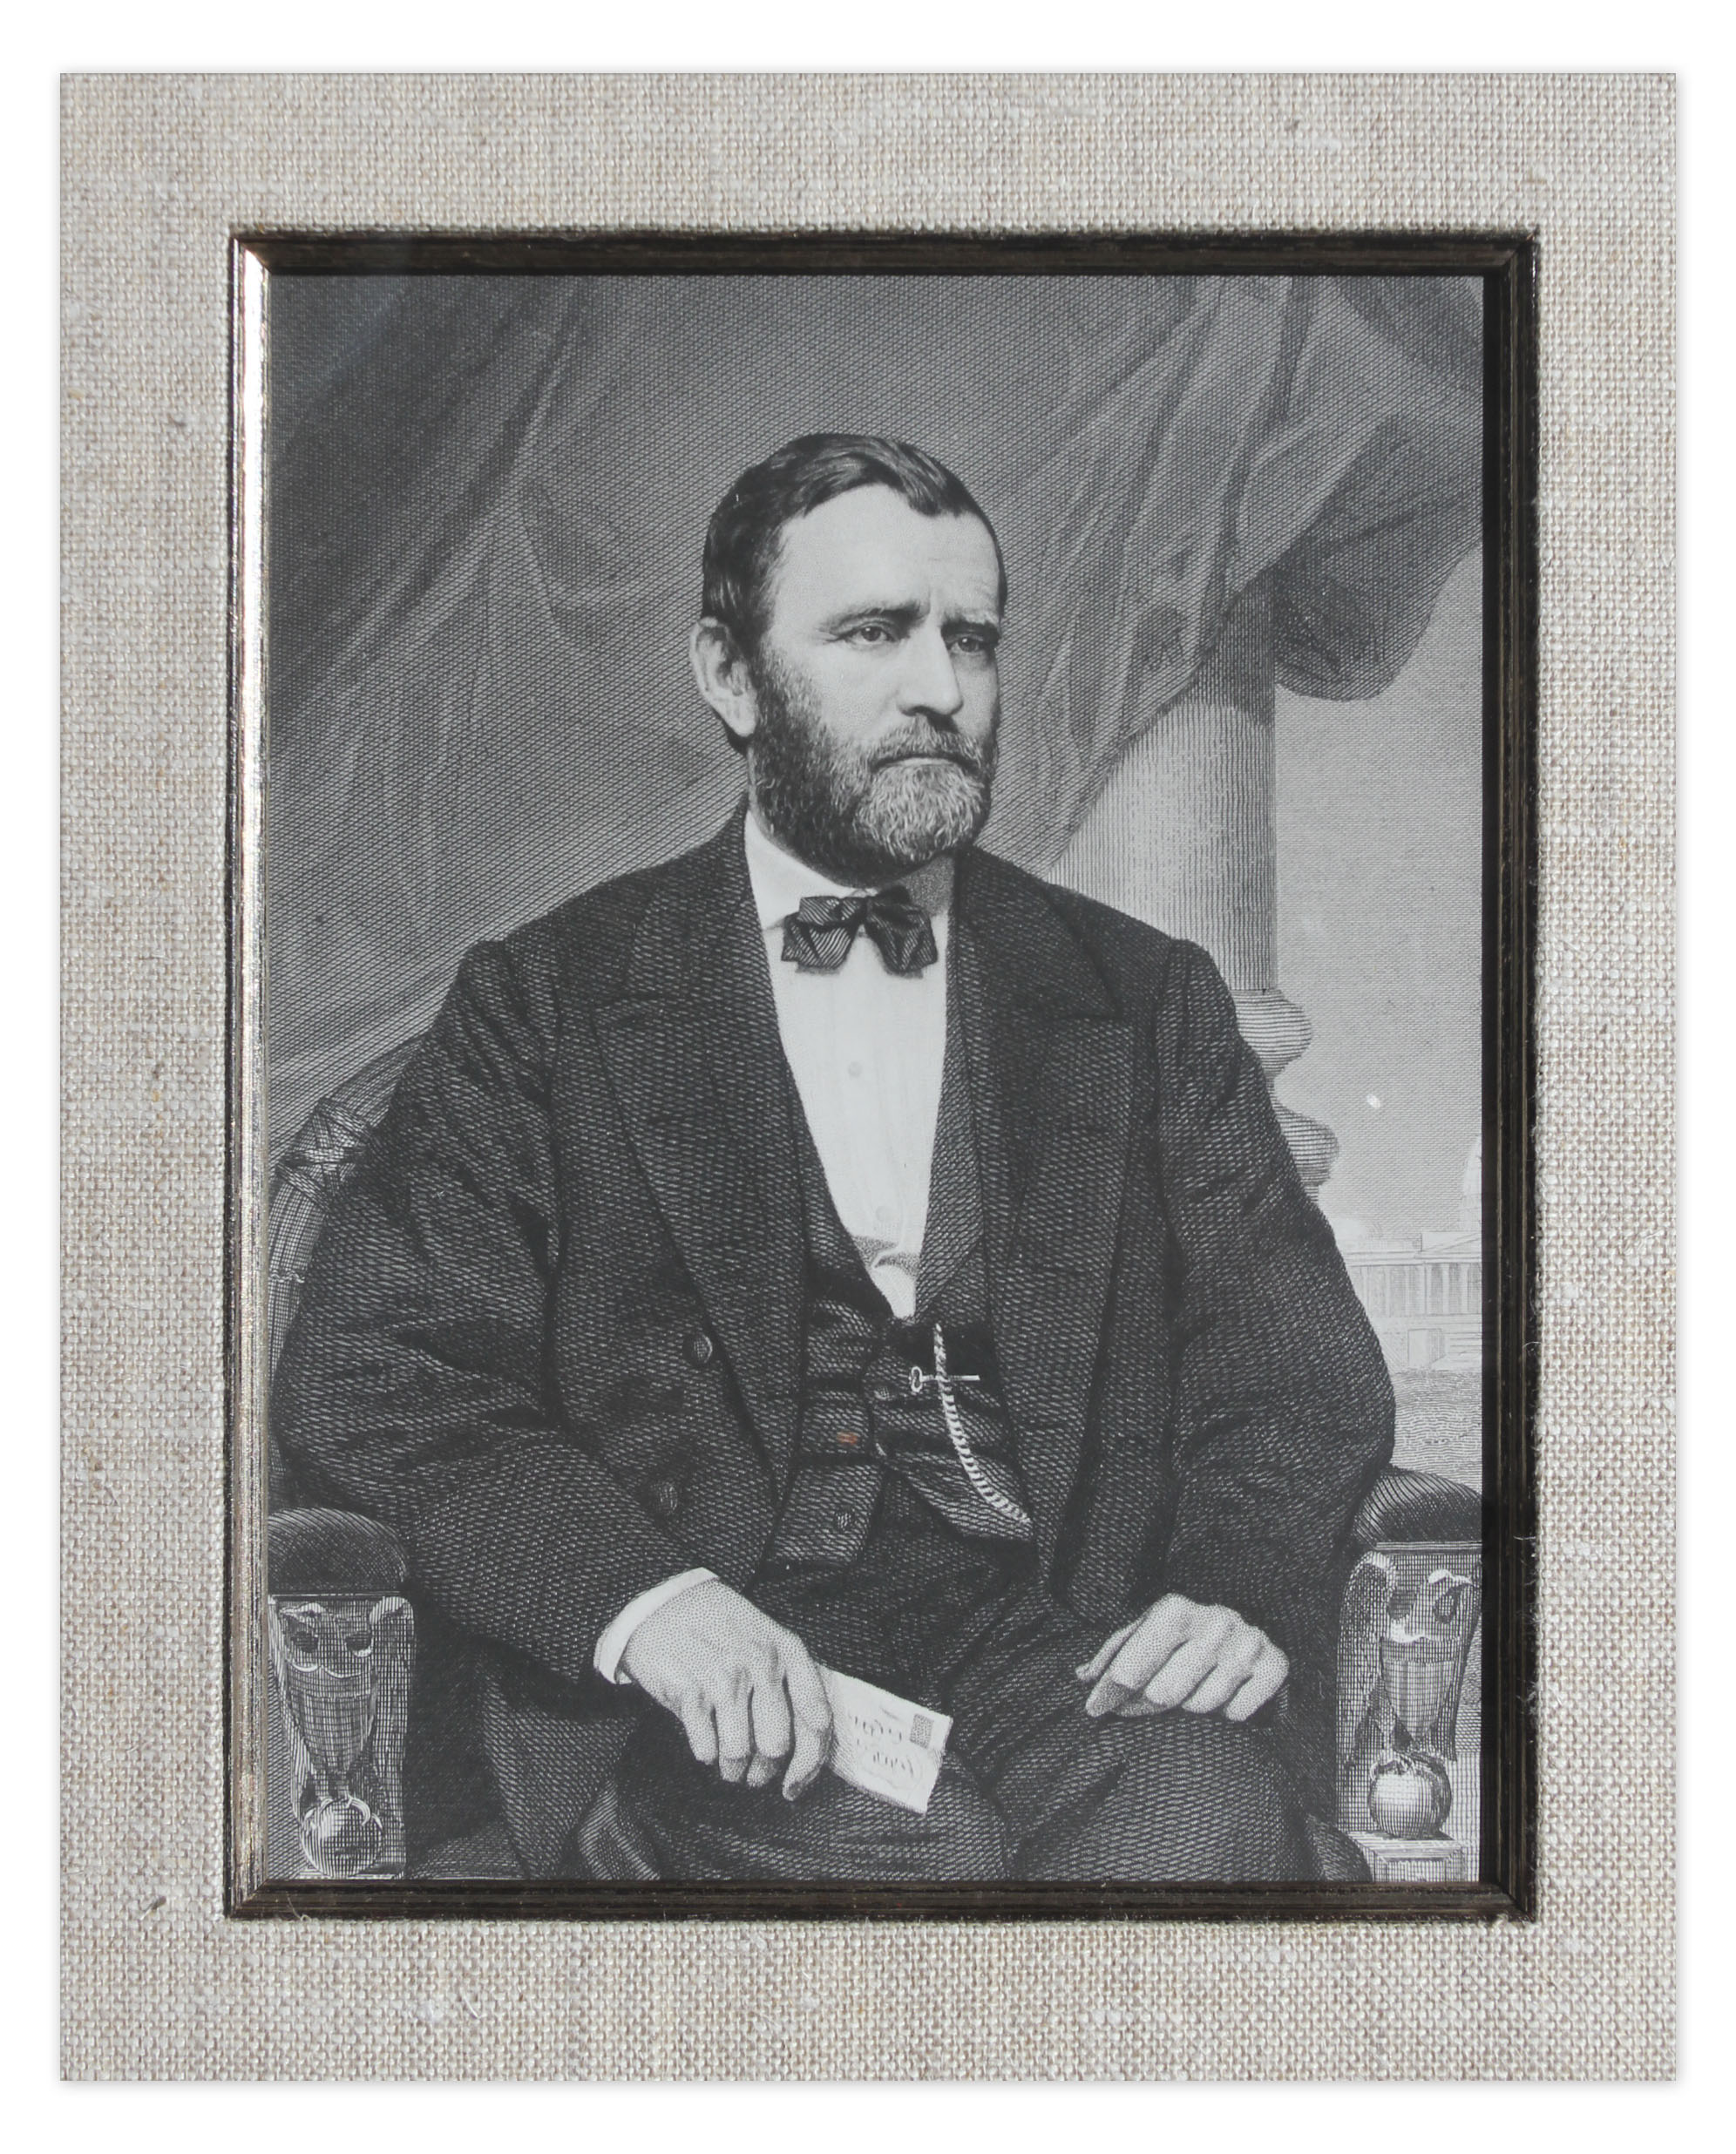 the different admirable qualities of general ulysses grant Ulysses s grant (born hiram ulysses grant april 27, 1822 - july 23, 1885) was the 18th president of the united states, commanding general of the army, soldier, international statesman, and author.